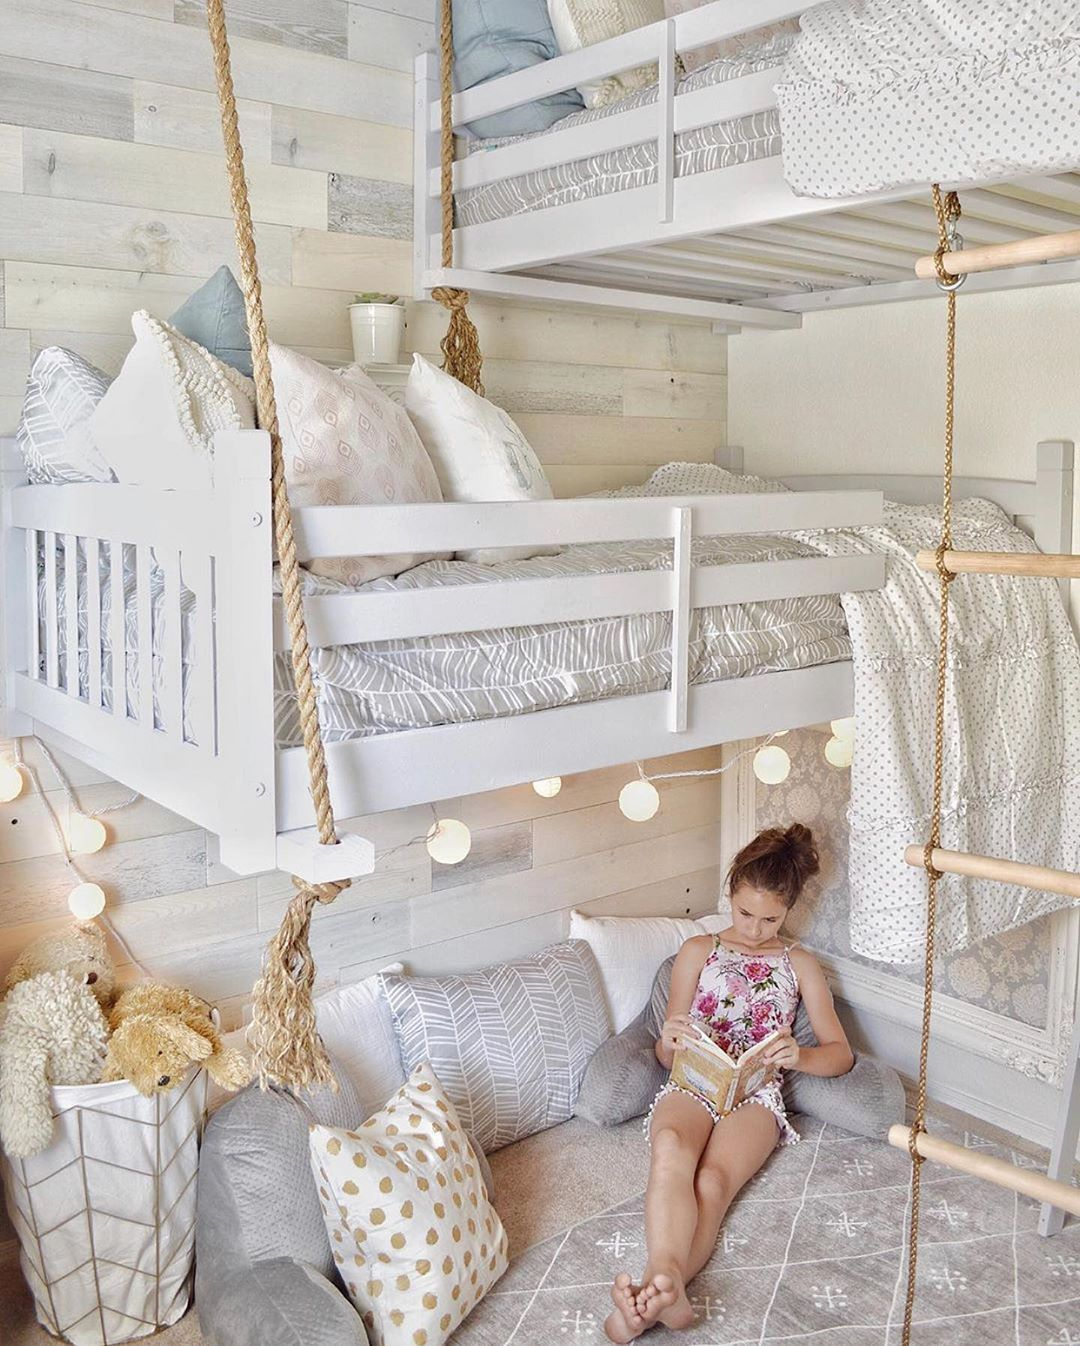 Cute Bunk Beds For Girls 2021 Girl Room Classy Rooms Girl Bedroom Decor